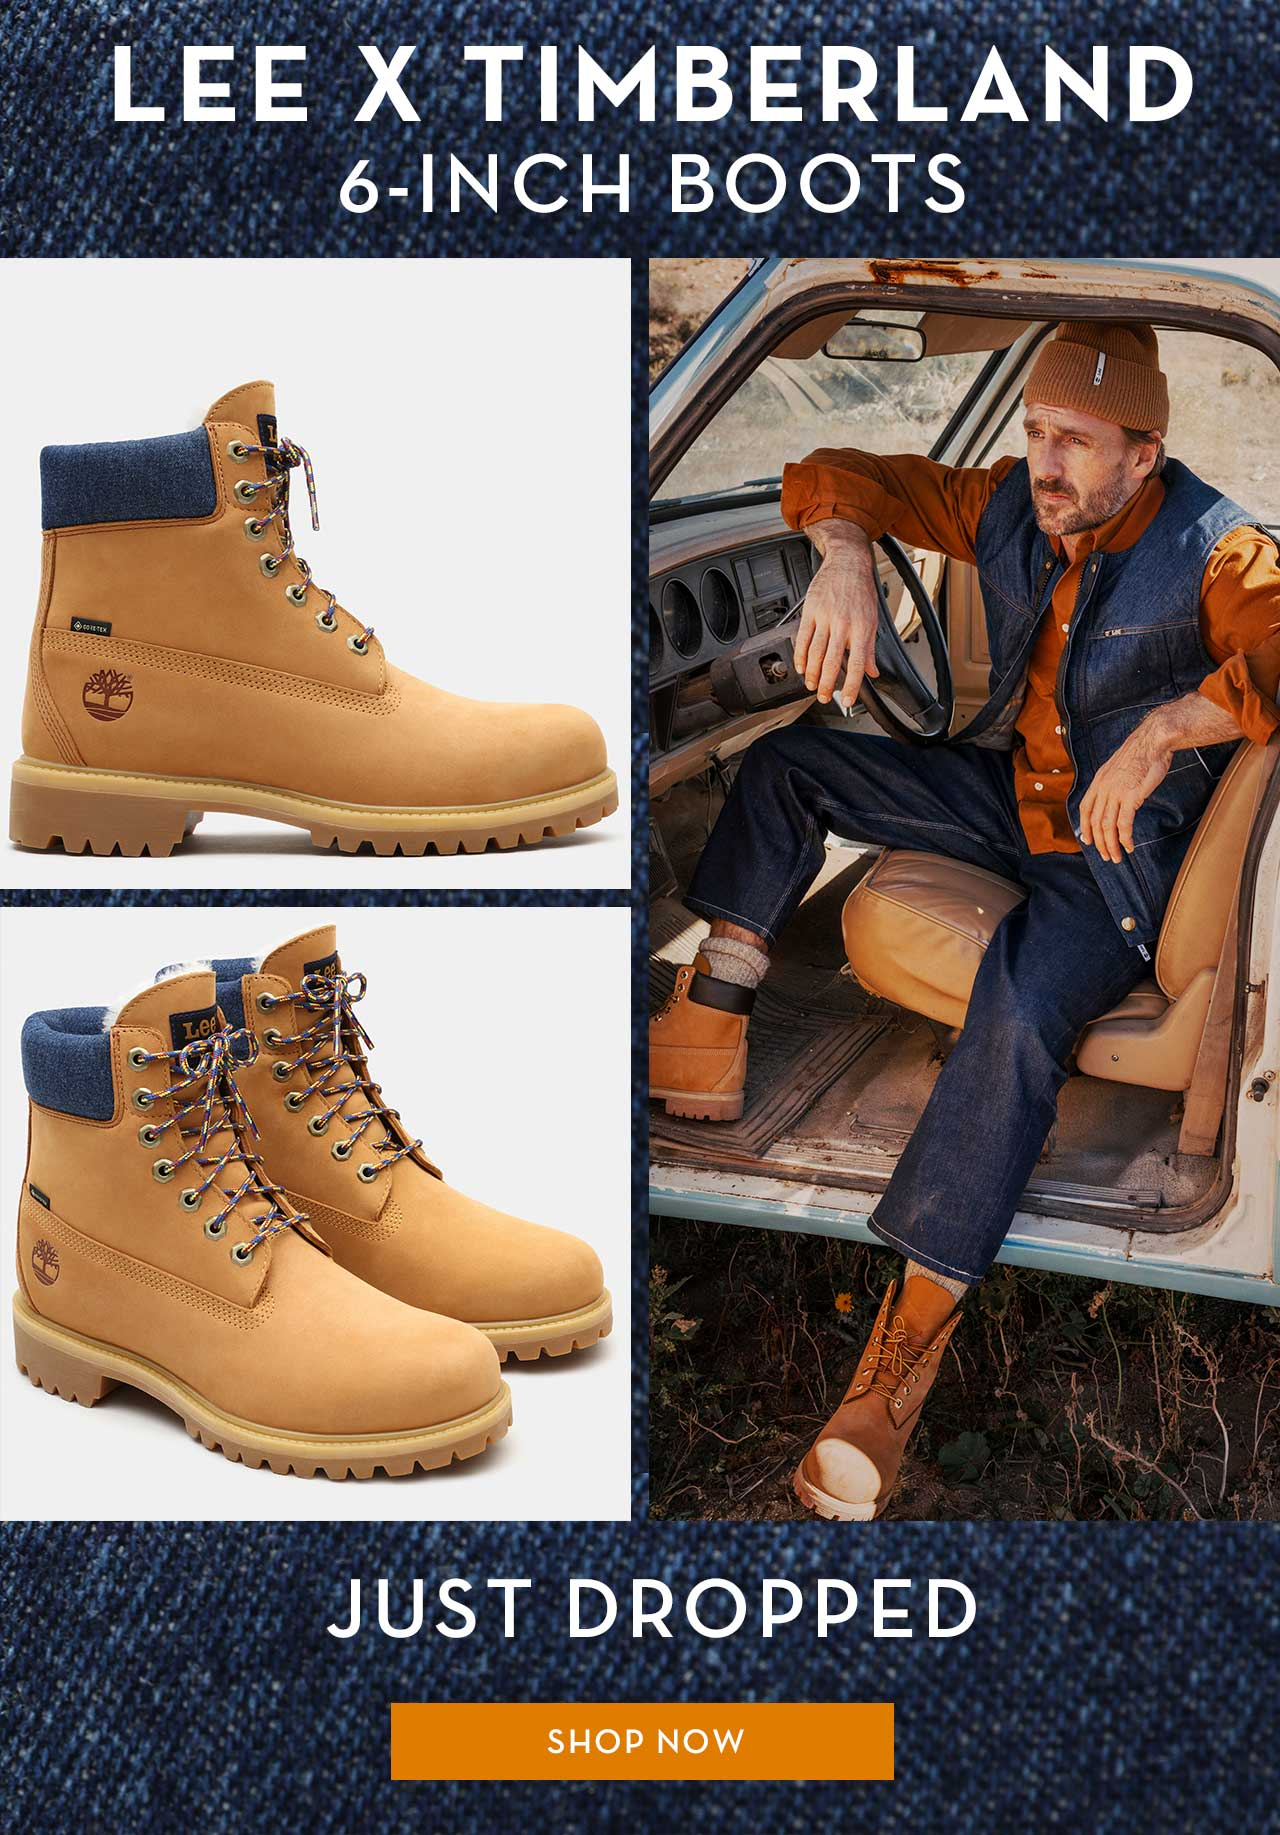 LEE X TIMBERLAND 6-INCH BOOTS JUST DROPPED SHOP NOW